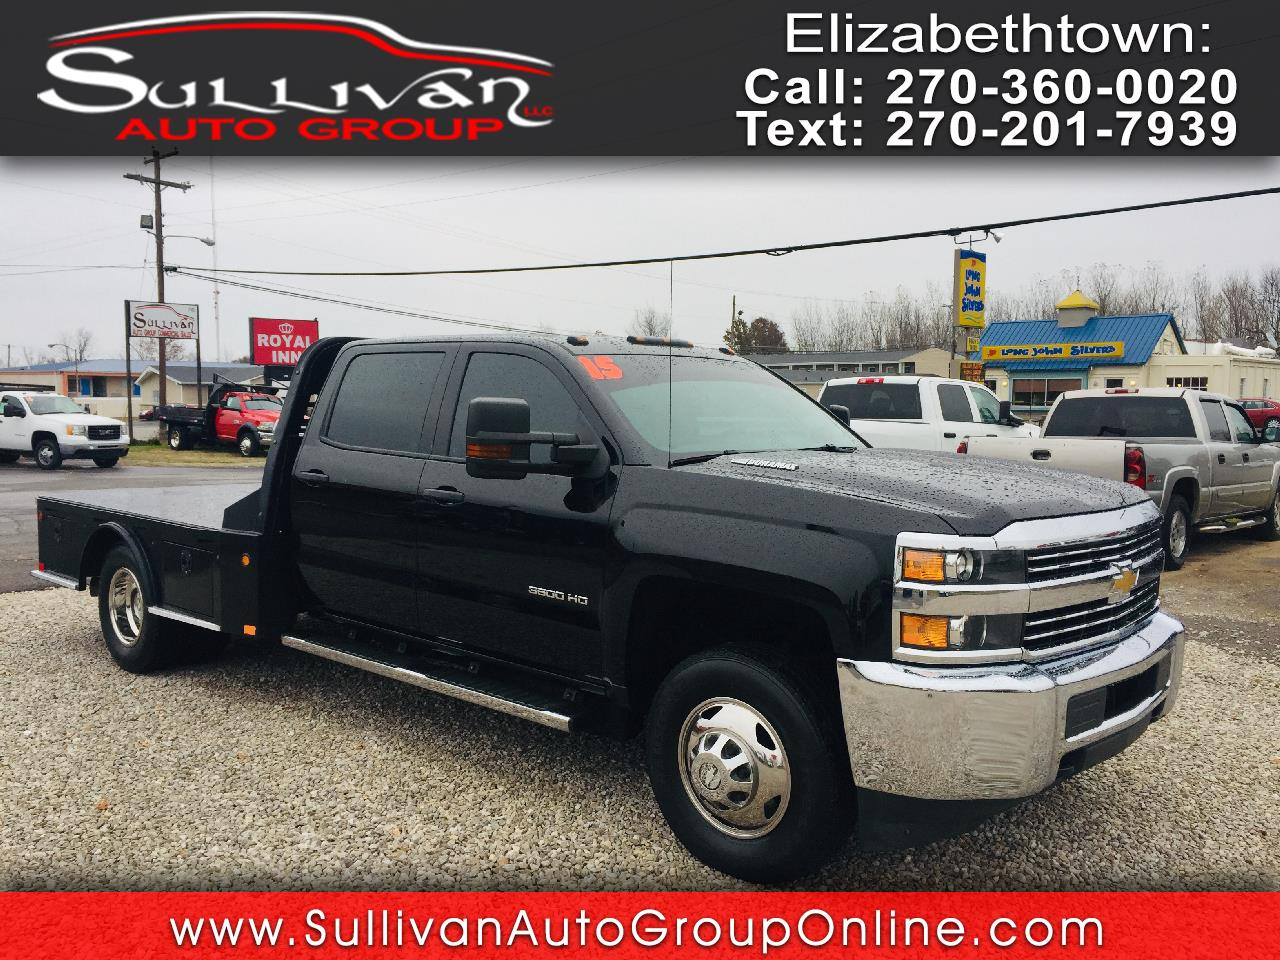 Buy Here Pay Cars For Sale Elizabethtown Ky 42701 Sullivan Auto 2015 Chevy Silverado Double Cab Silver Chevrolet 3500hd Built After Aug 14 4wd Crew 1715 Wb 5906 Ca Wt